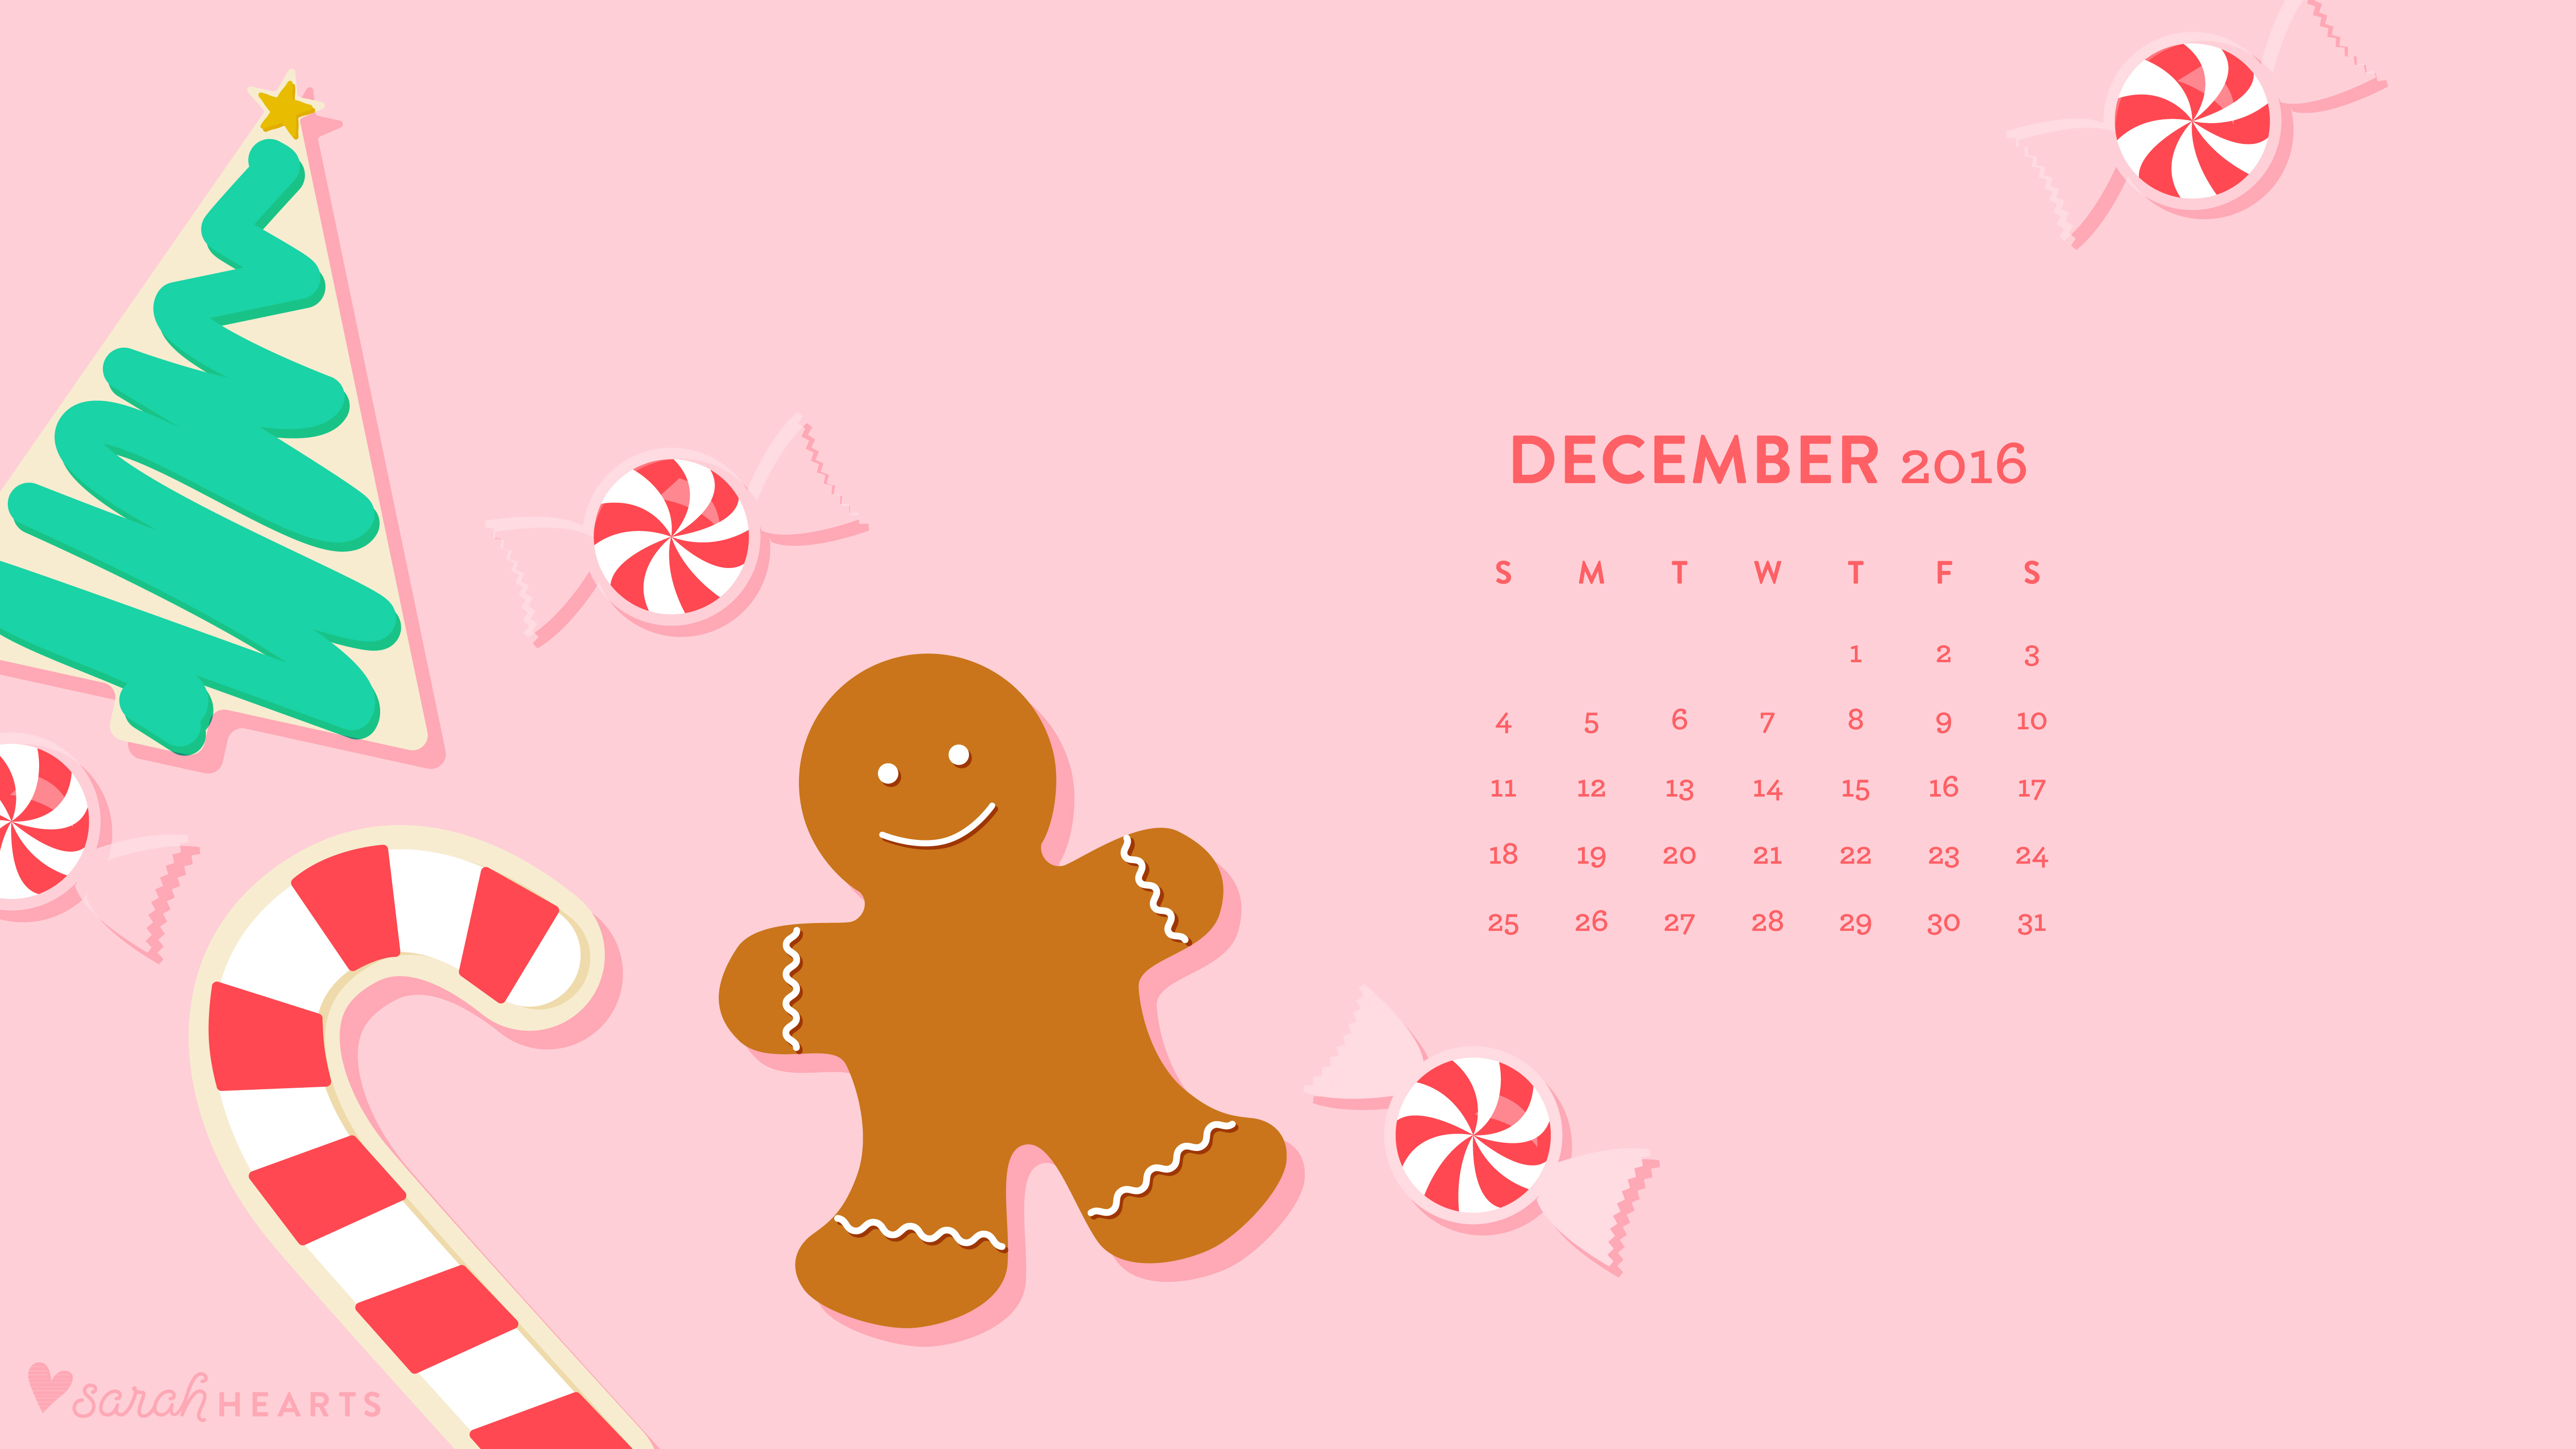 December 2016 Christmas Cookie Calendar Wallpaper , Sarah Hearts